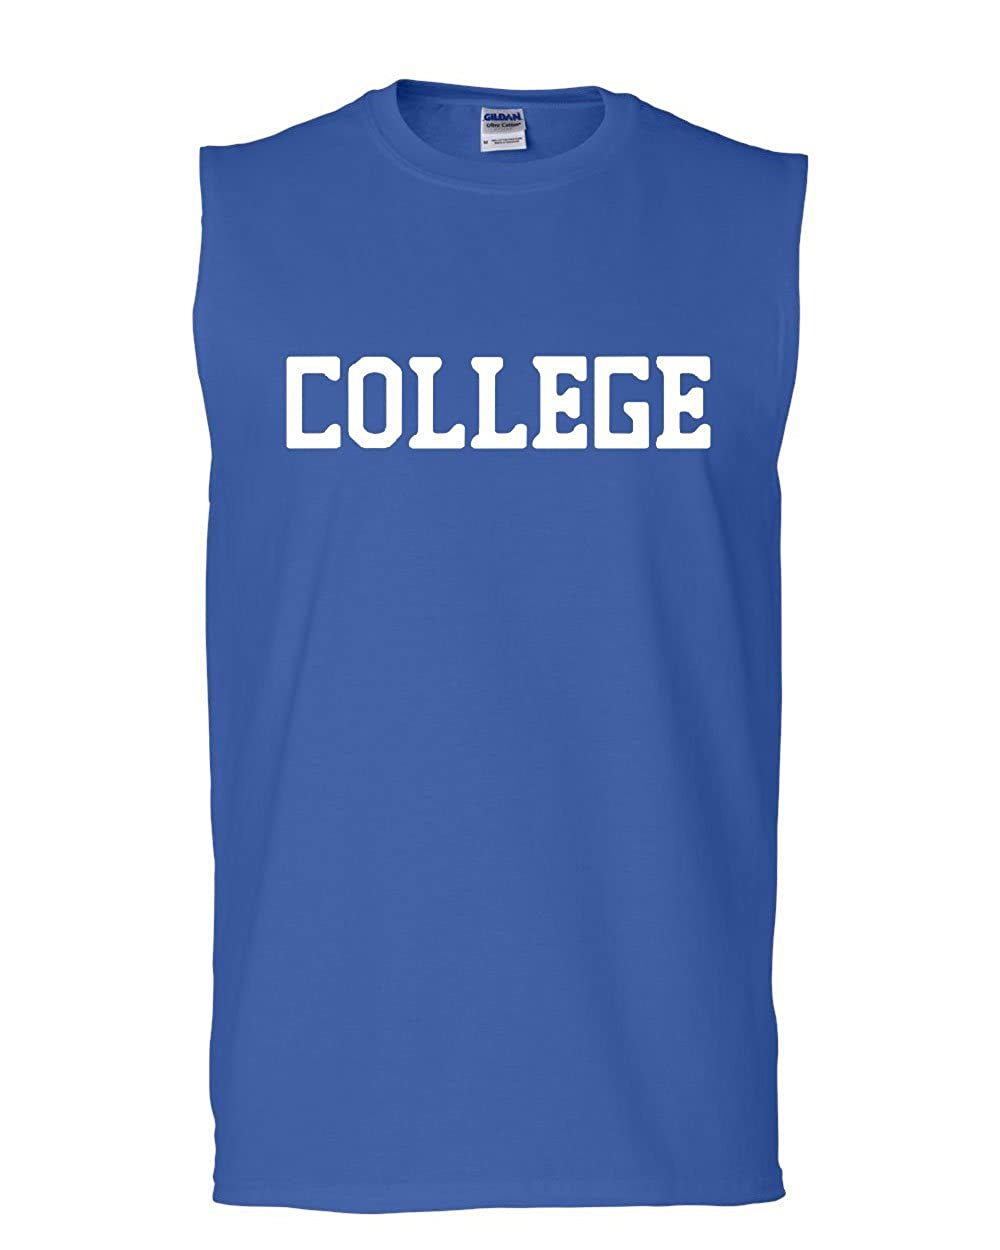 Tee Hunt College Muscle Shirt Frat Fraternity Study Party Student School Sleeveless